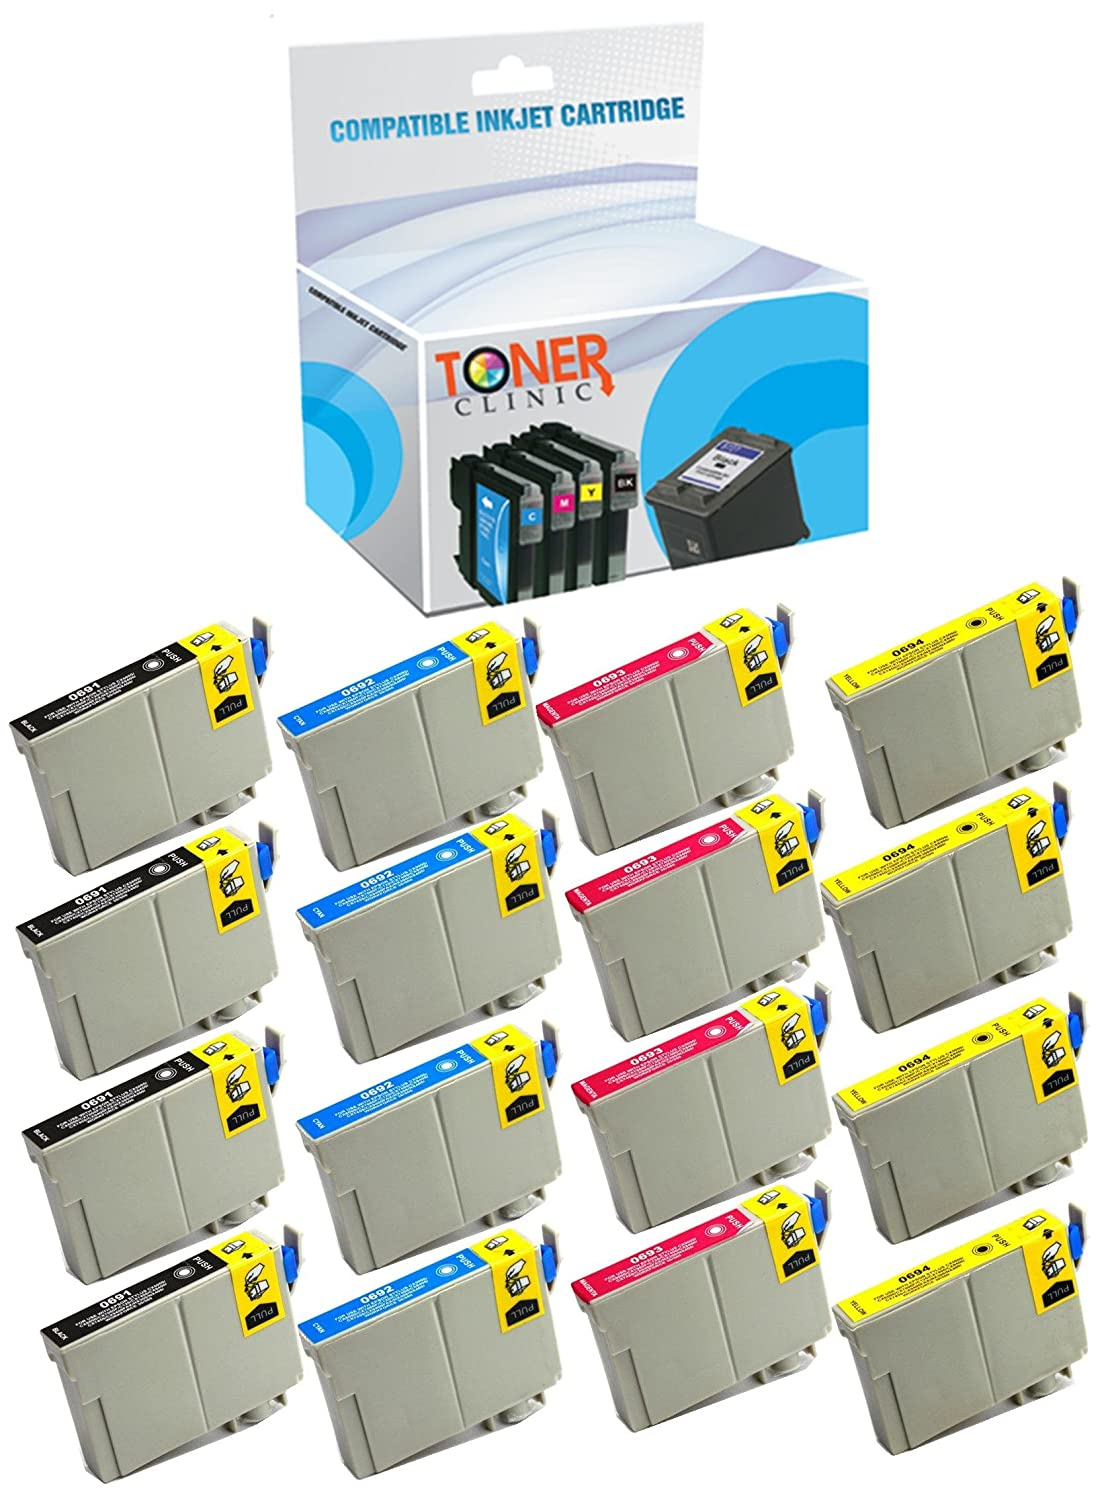 Toner Clinic ® TC-T069 16PK 4 Black 4 Cyan 4 Magenta 4 Yellow Inkjet Cartridge for Epson T069 69 Compatible With Epson Stylus C120 NX100 NX110 NX115 NX200 NX210 NX215 NX300 NX400 NX410 NX415 NX510 NX515 WorkForce 1100 30 310 315 40 500 600 610 615